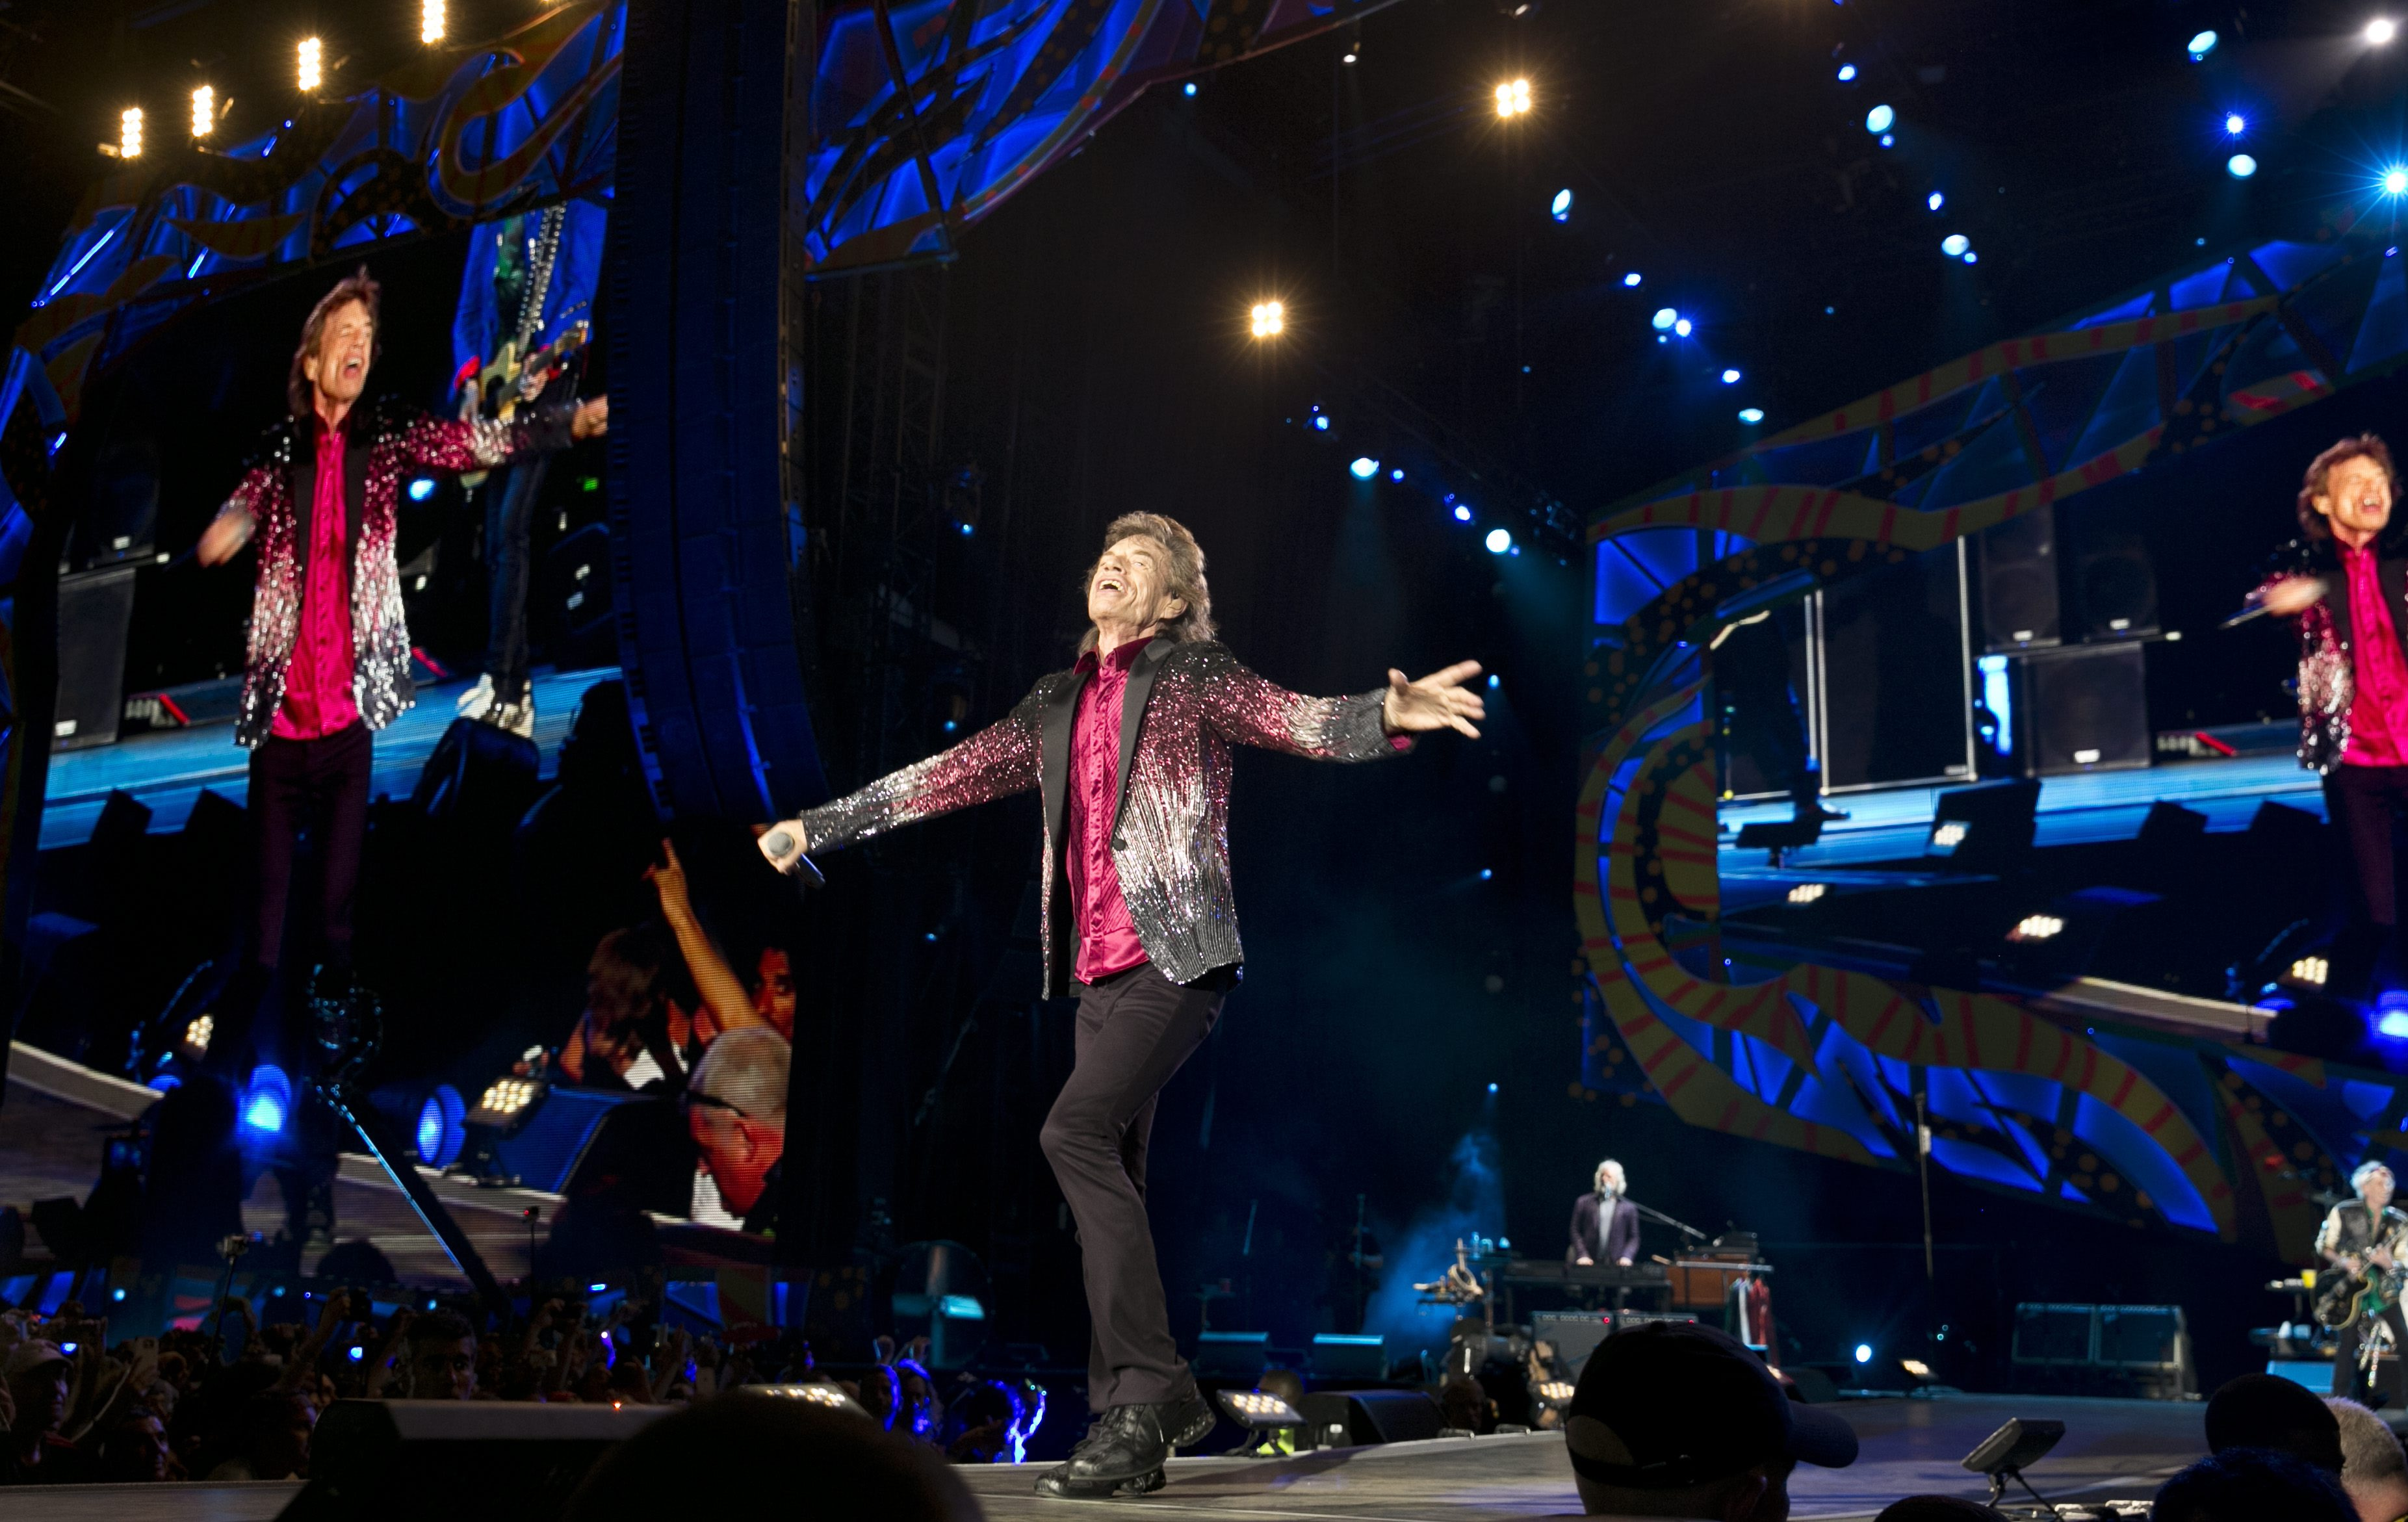 Mick Jagger of The Rolling Stones performs in Havana, Cuba, Friday March 25, 2016. The Stones are performing in a free concert in Havana Friday, becoming the most famous act to play Cuba since its 1959 revolution. (AP Photo/Enric Marti)